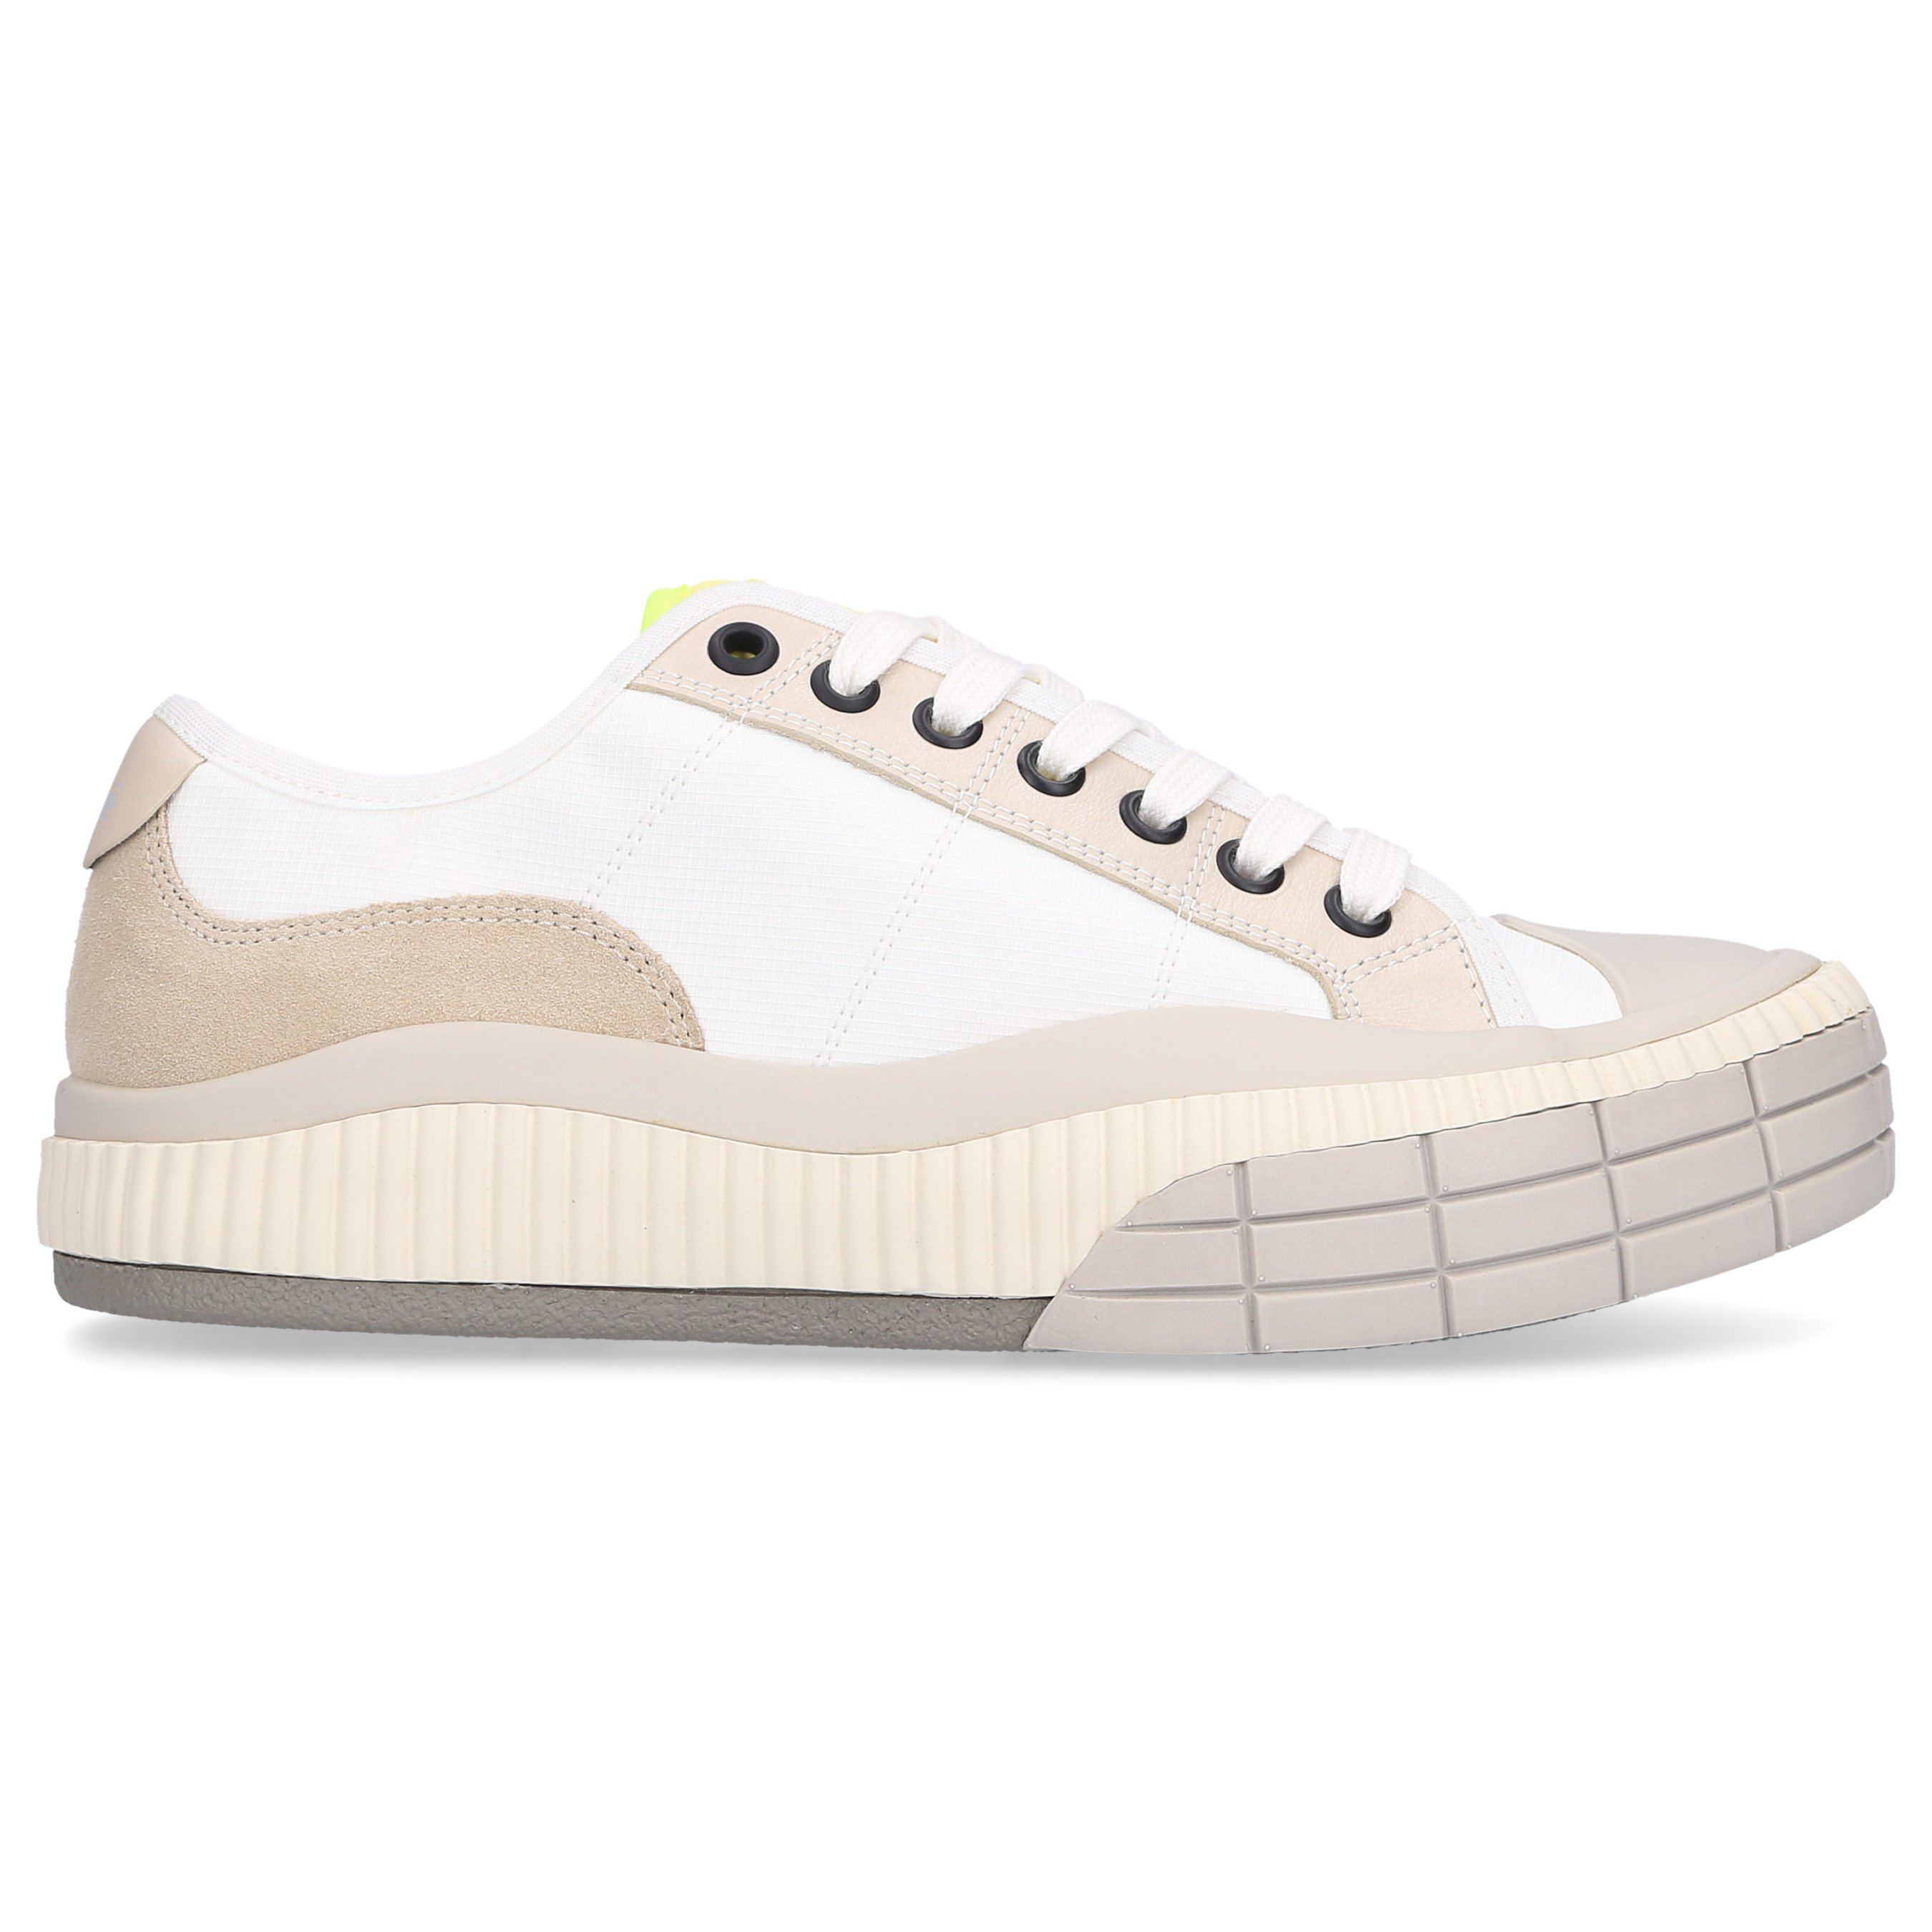 CHLOÉ LOW-TOP SNEAKERS CLINT